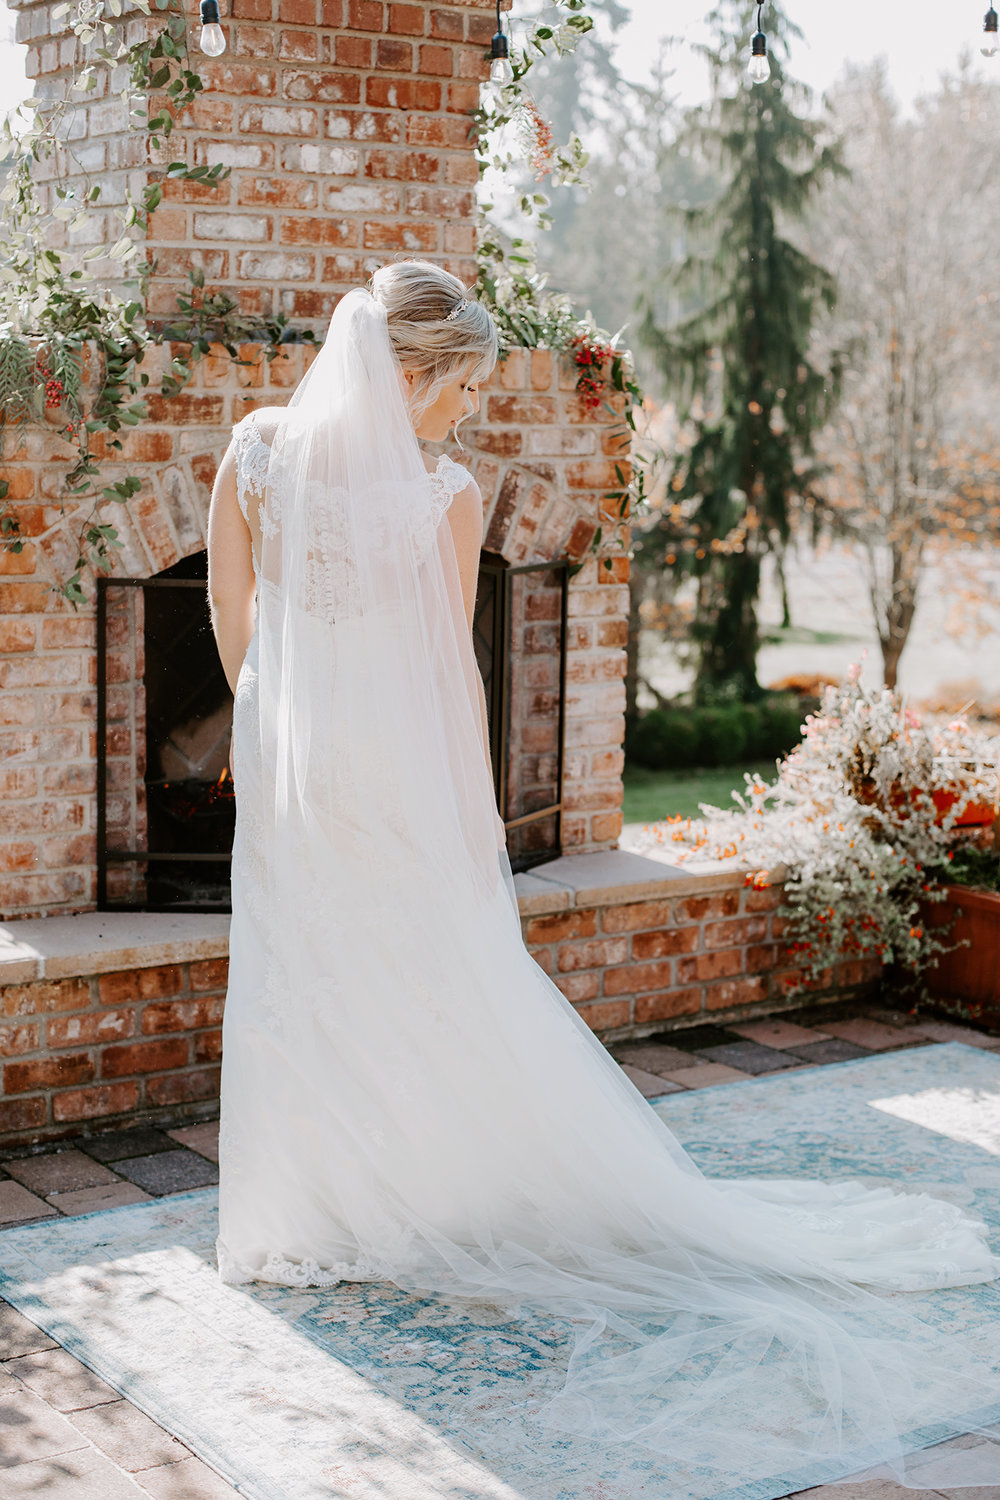 Brittany Martorella Photography - Olympia Waashington Wedding Photographer - Andrew Scott + Kristina Kozakova Wedding 10/21/2018